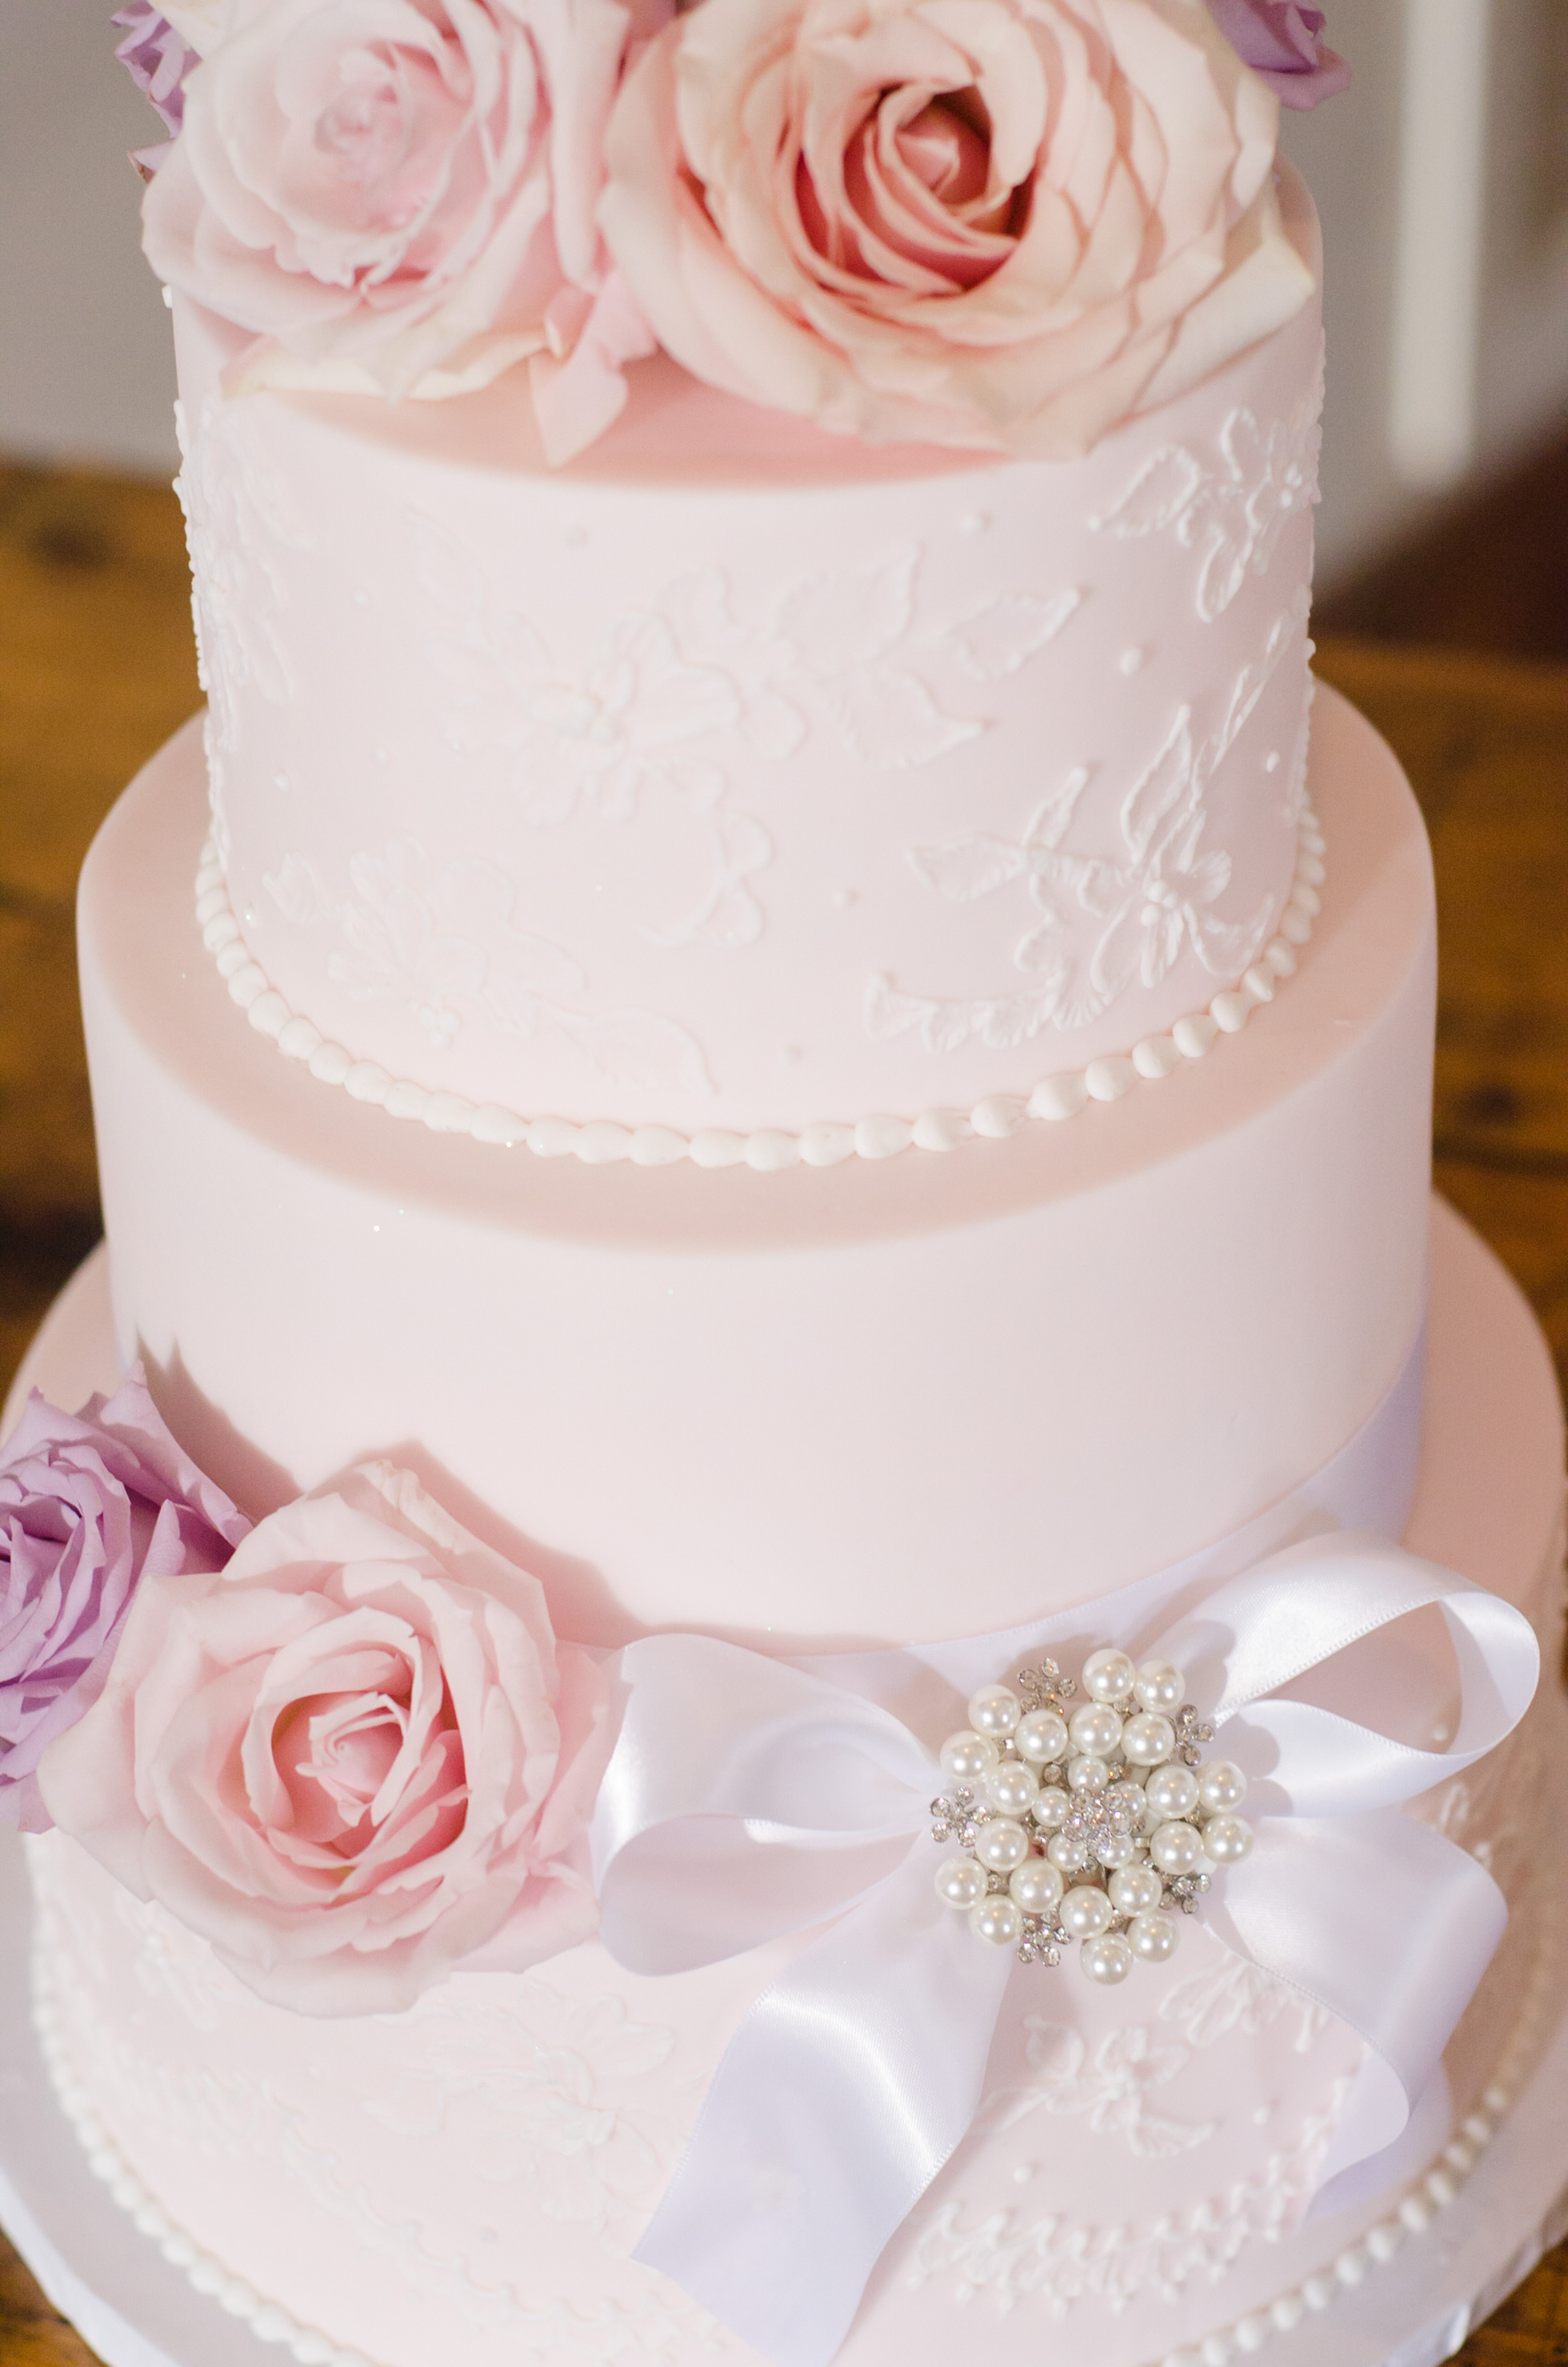 Wedding cake with ribbon accents